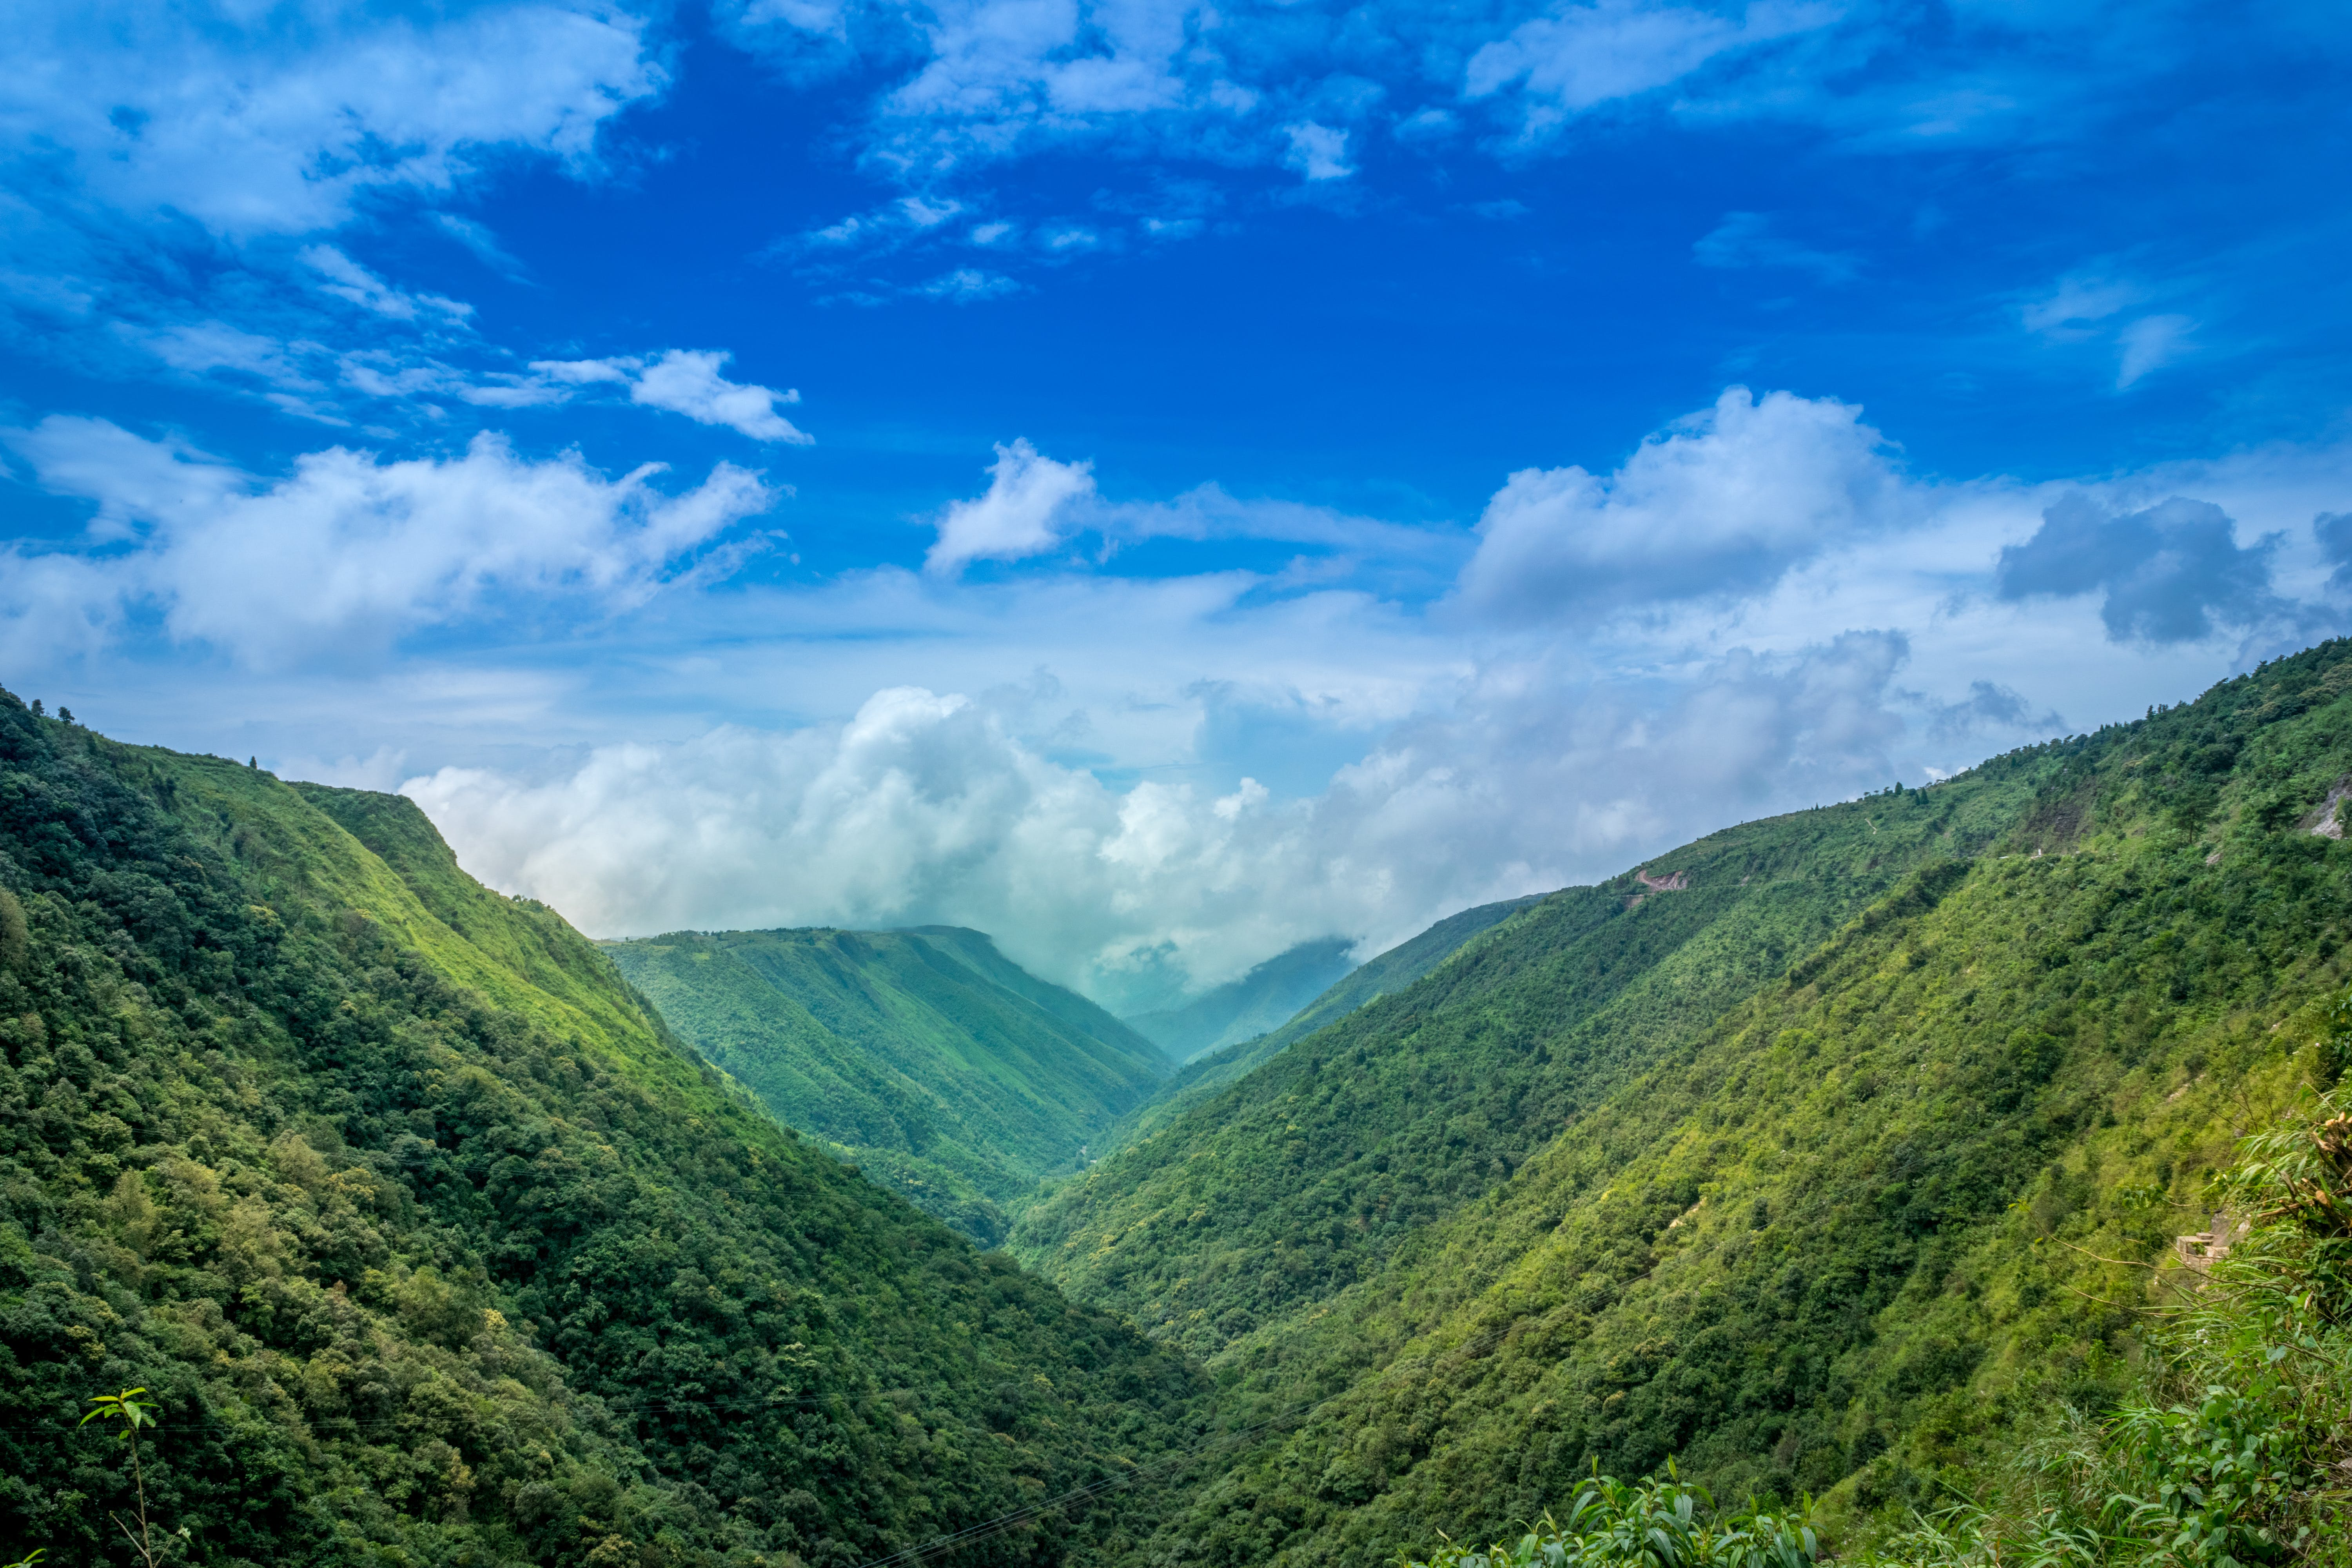 Green Plants Covered Mountain